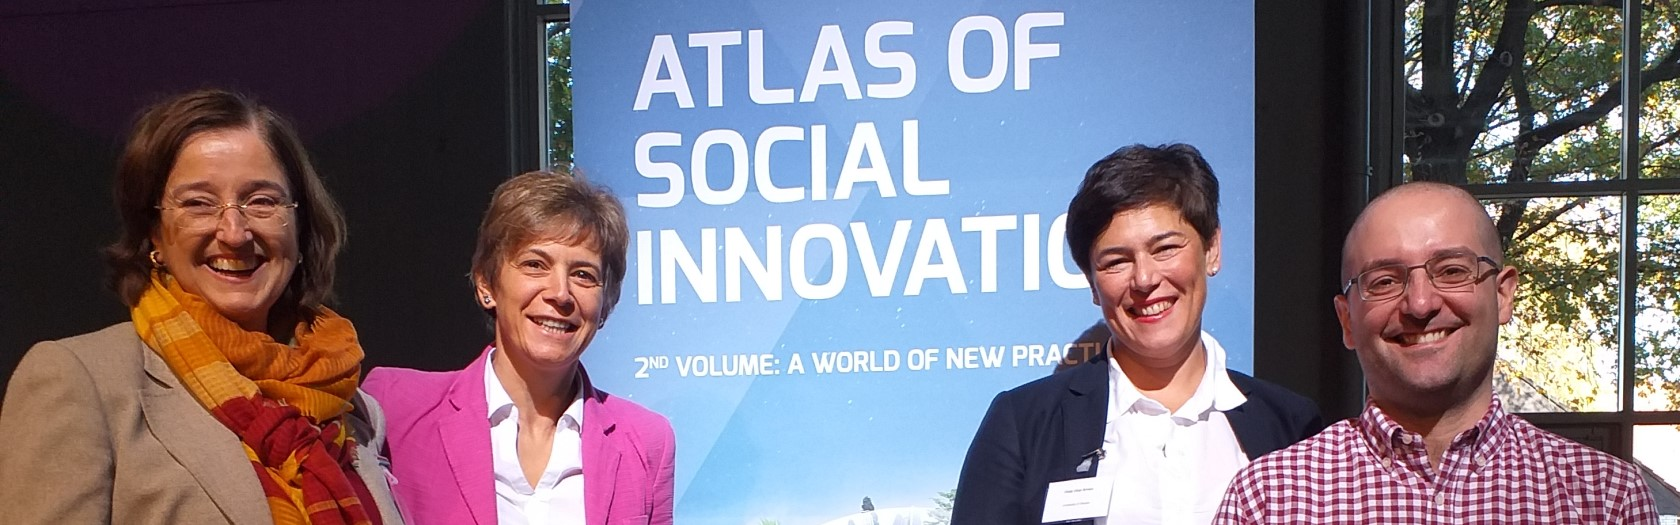 2nd edition of the Atlas of Social Innovation